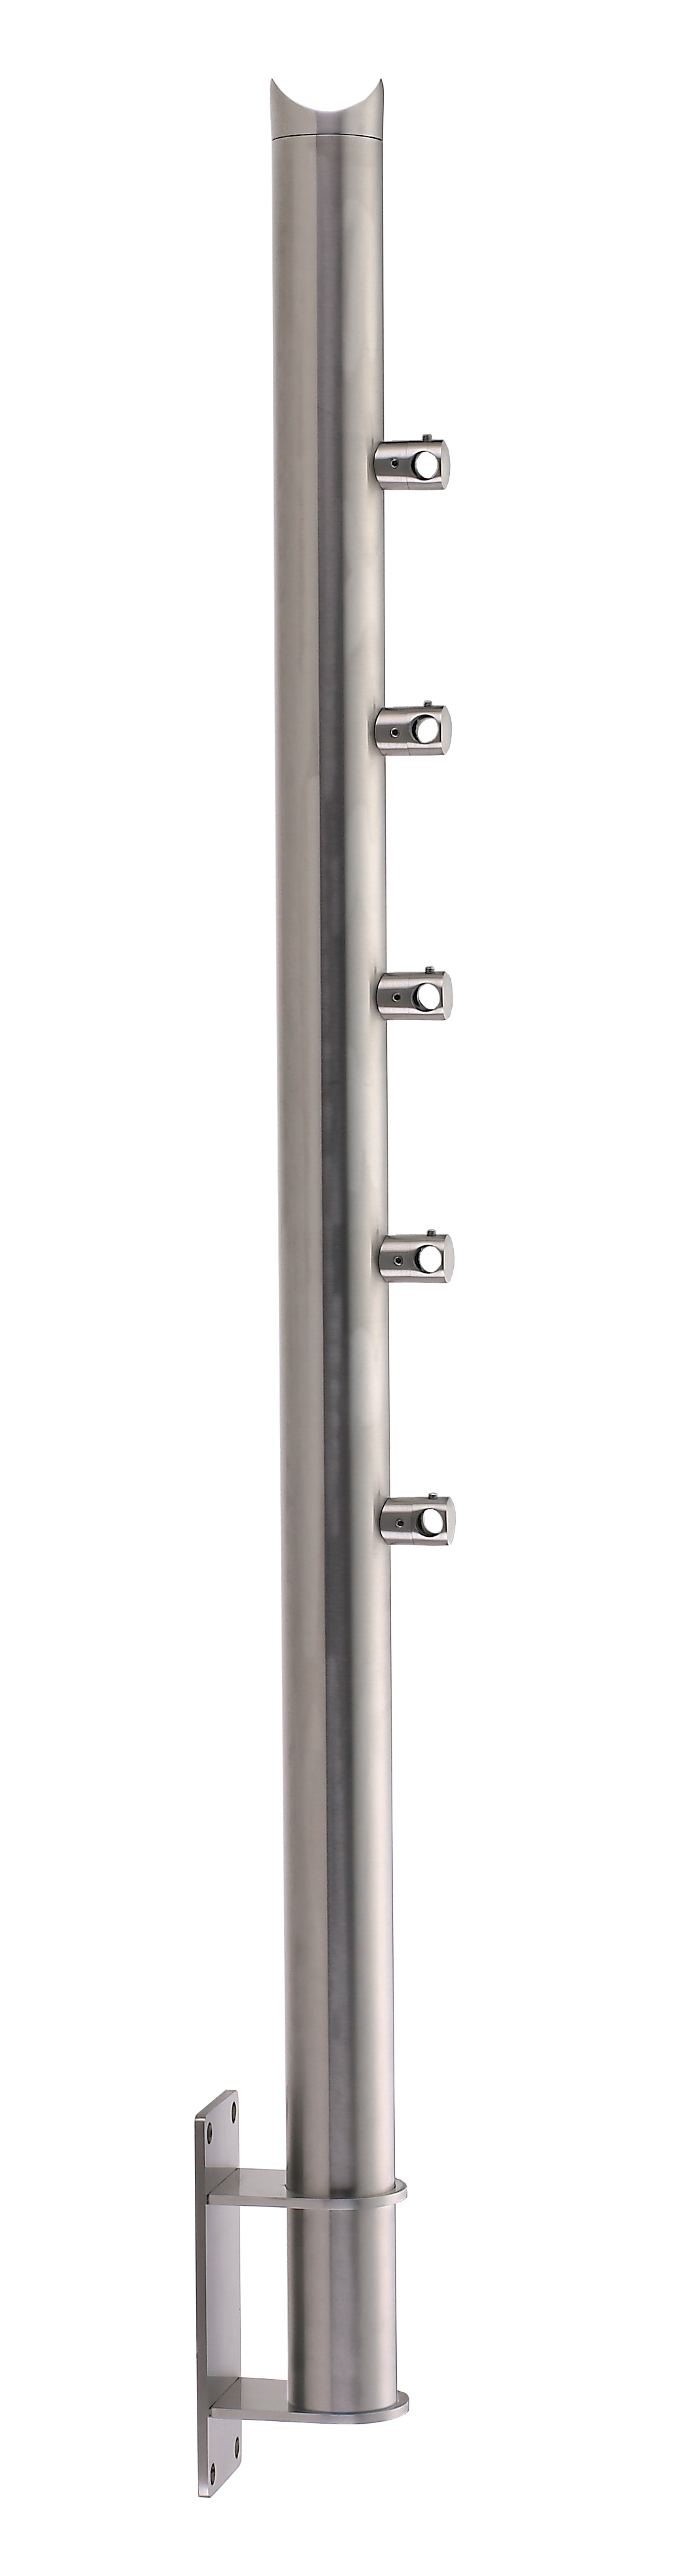 Stainless Steel Balustrade Posts - Tubular - SS:2020576A